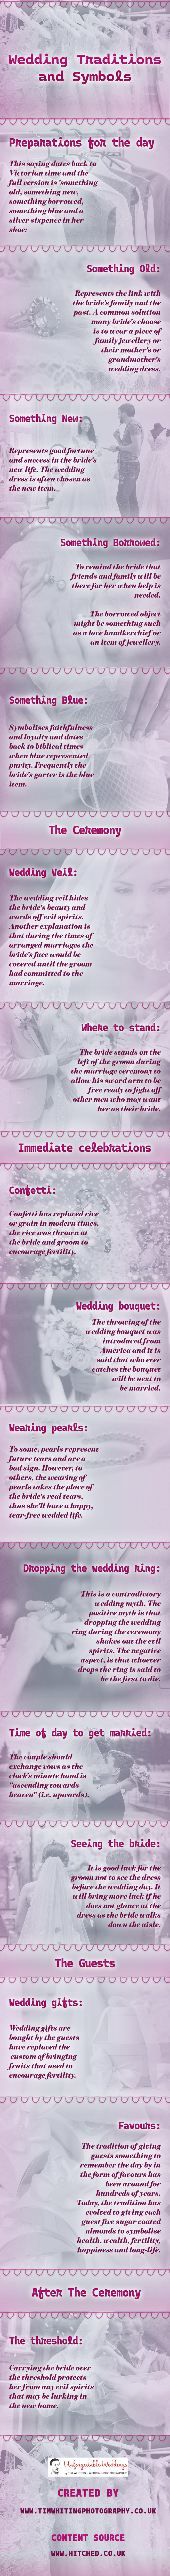 Wedding Traditions and Symbols 2.png